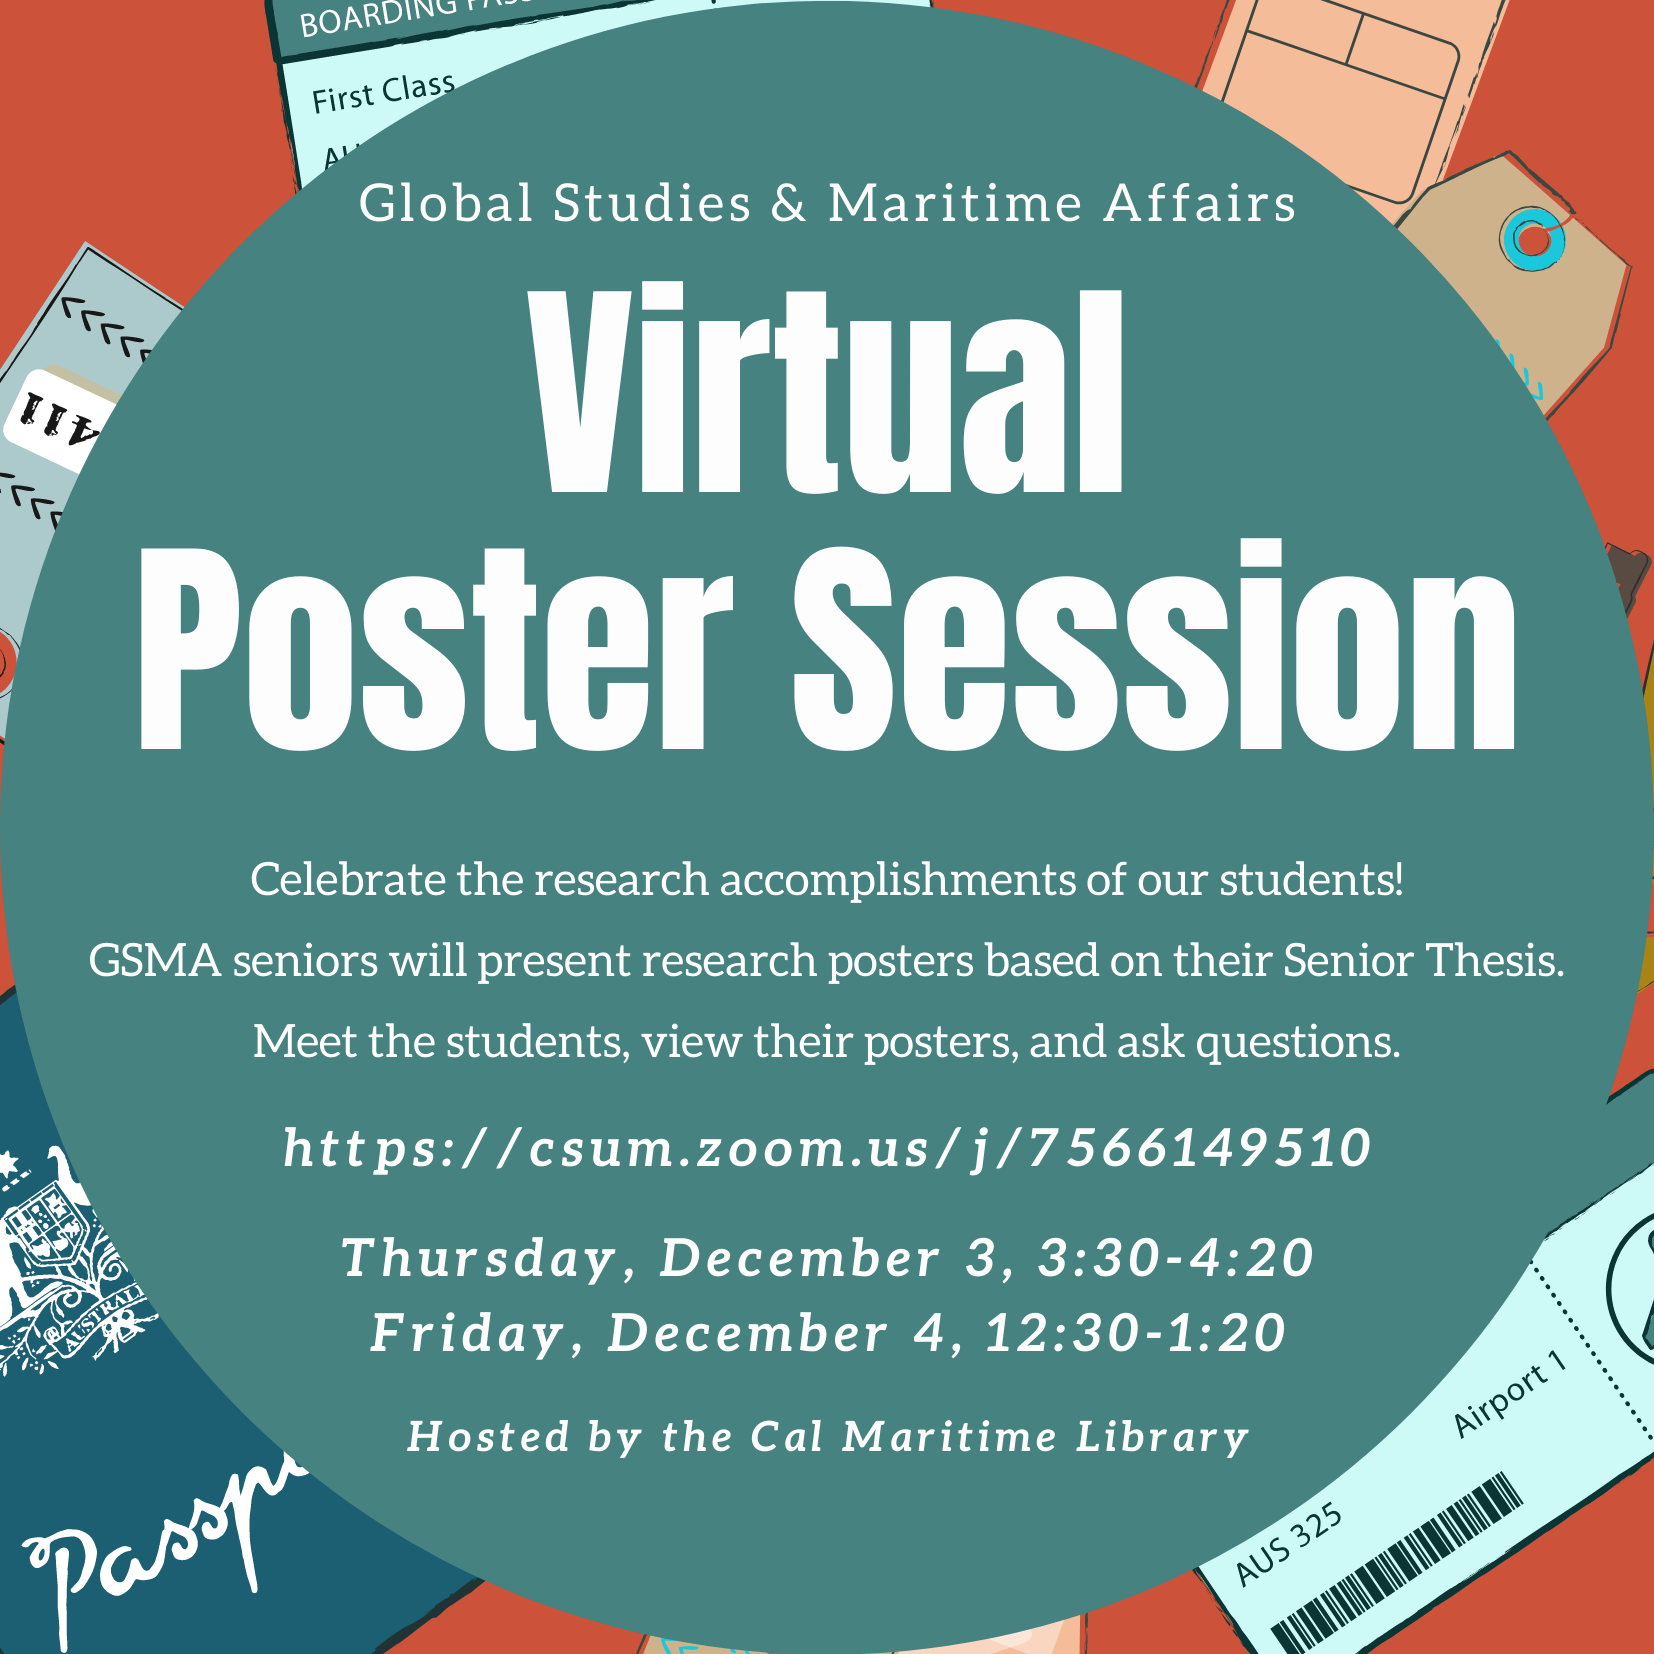 poster session announcement